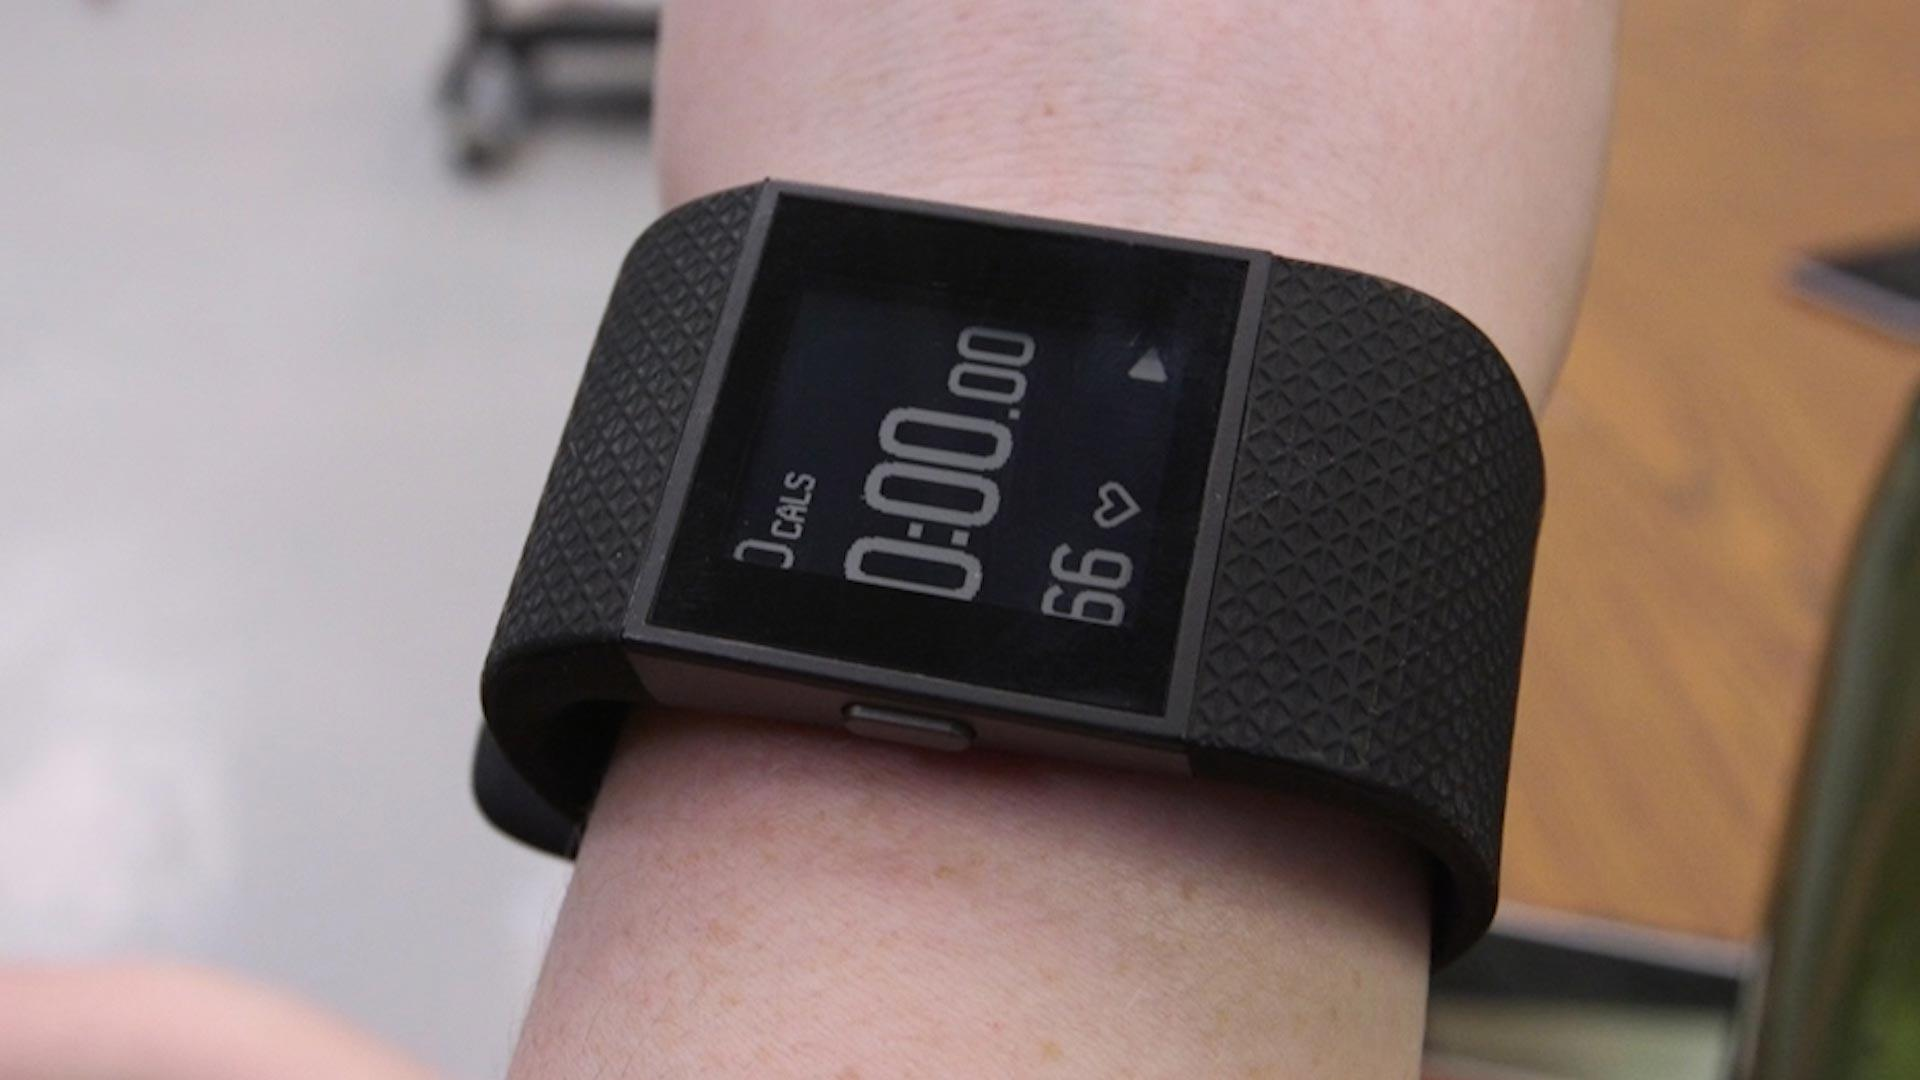 Taking the Pulse of Fitbits Contested Heart Rate Monitors